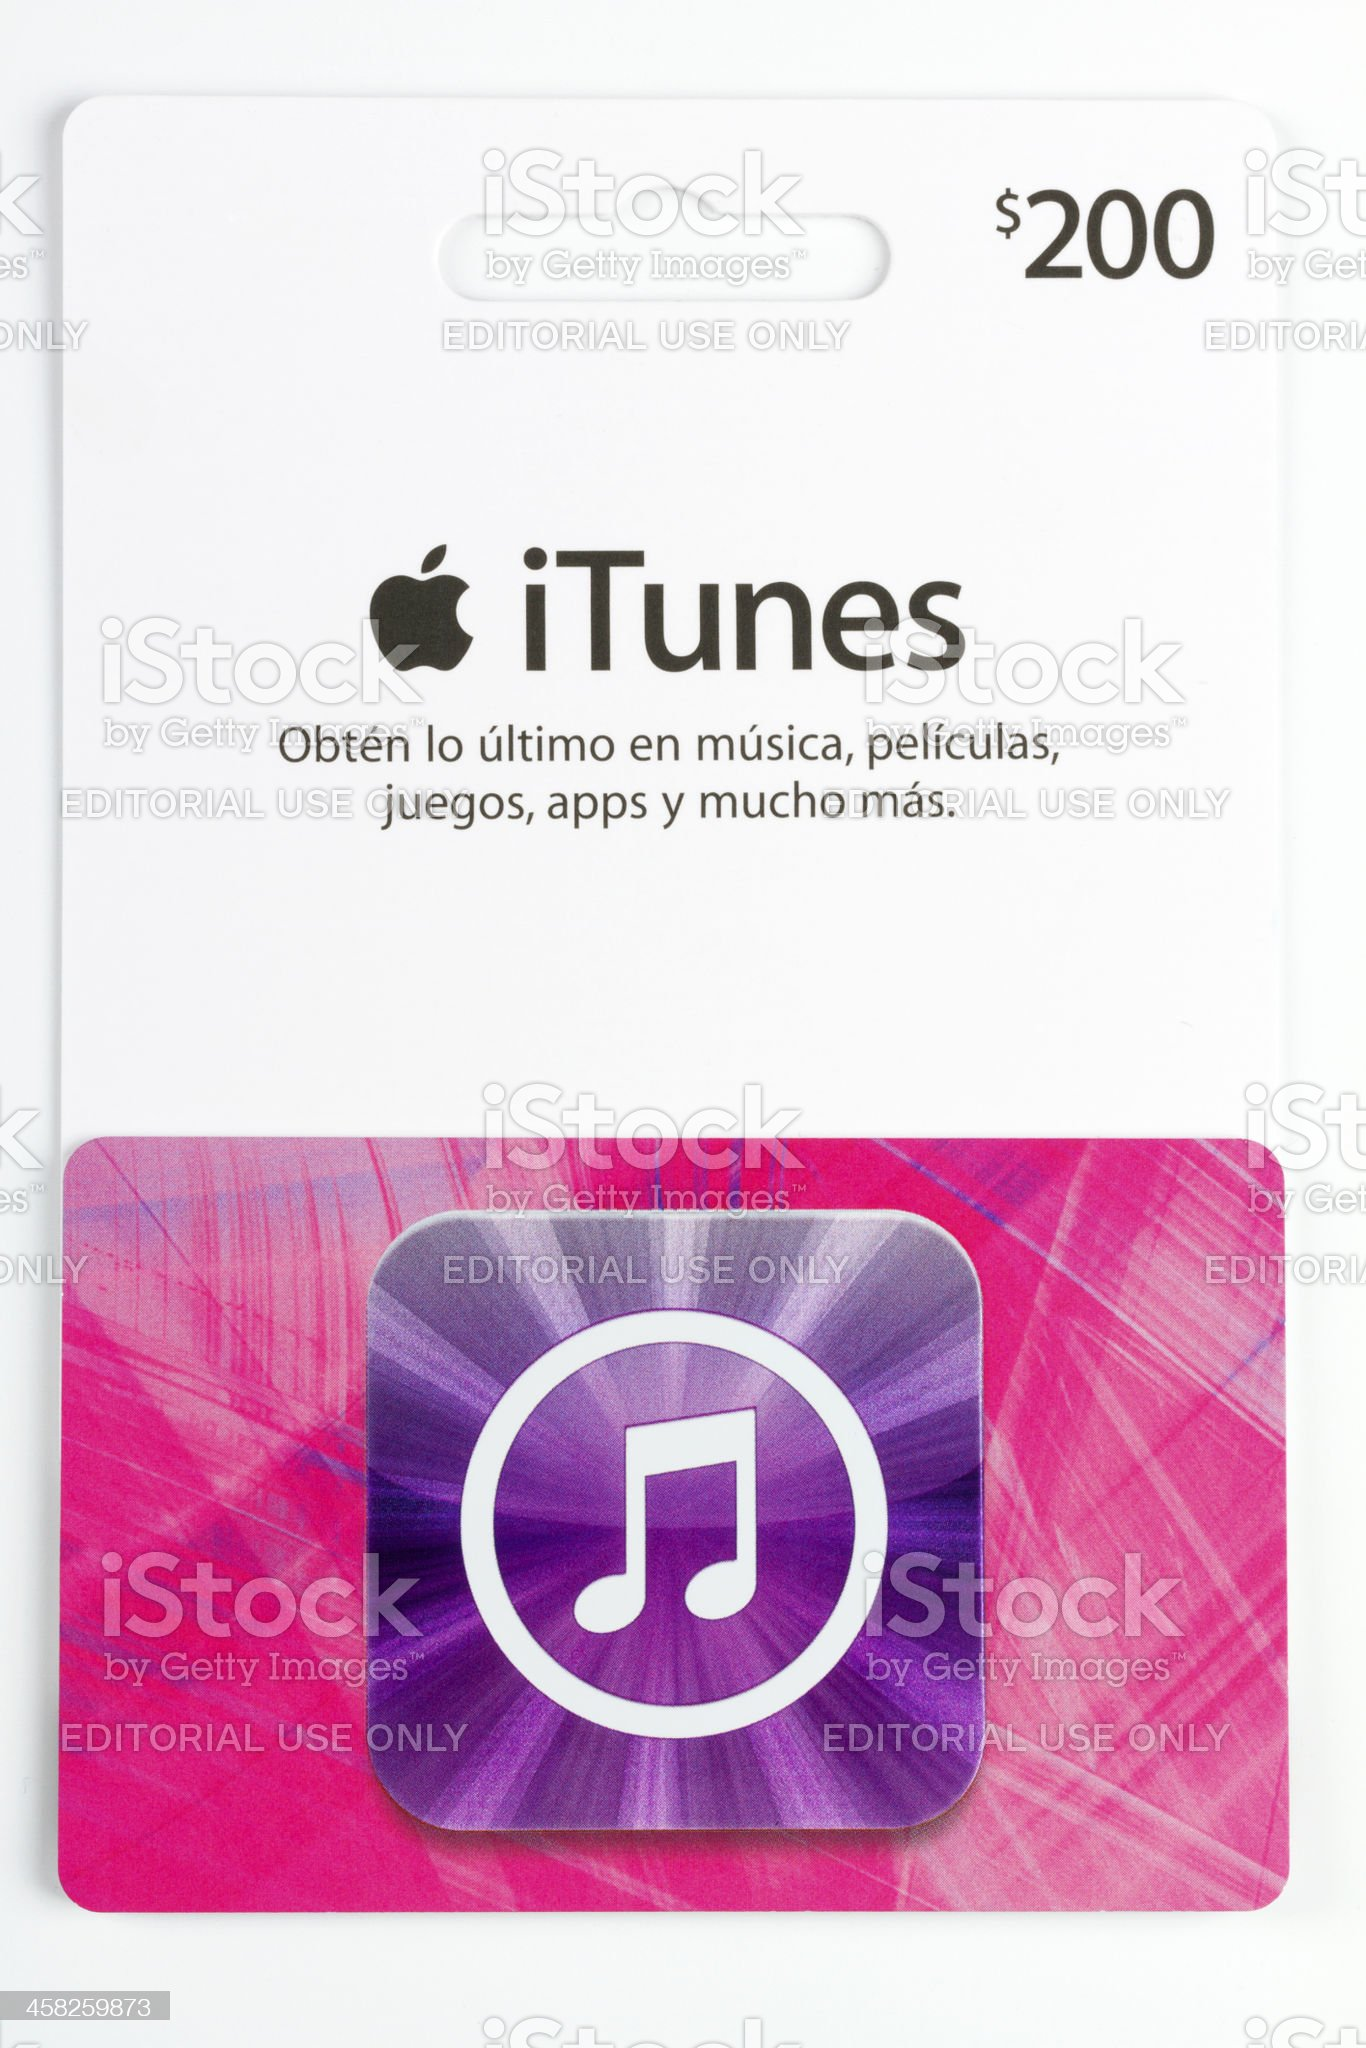 Apple iTunes Store card royalty-free stock photo